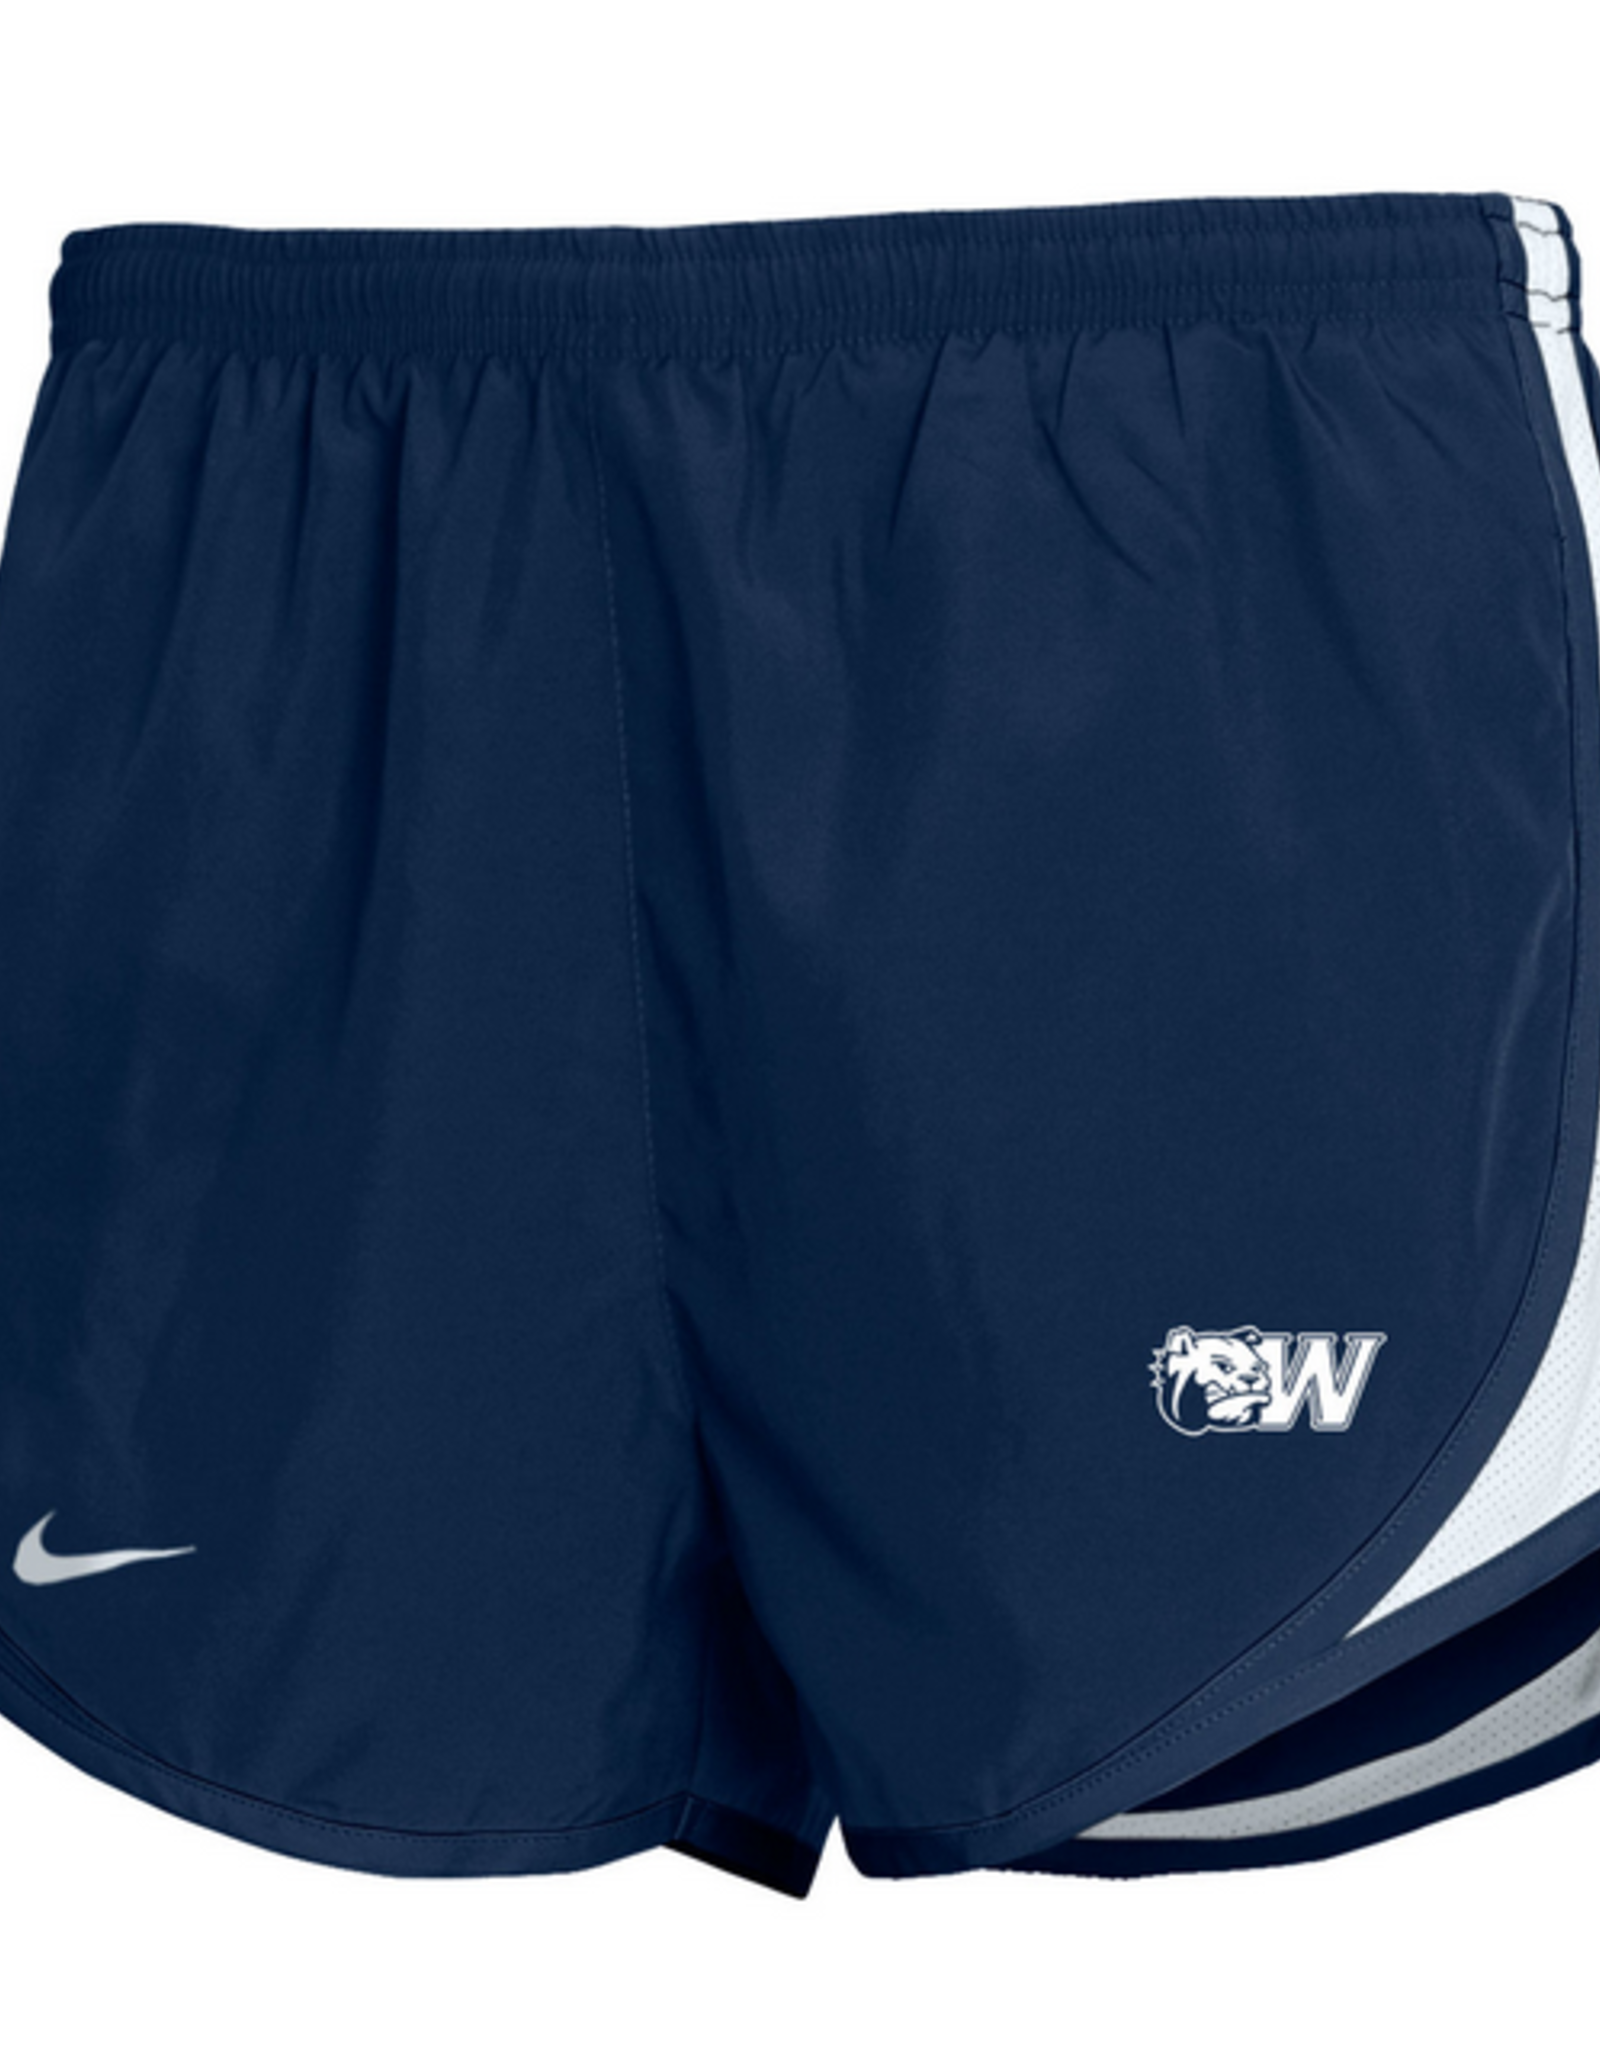 Nike Youth Navy Tempo Shorts